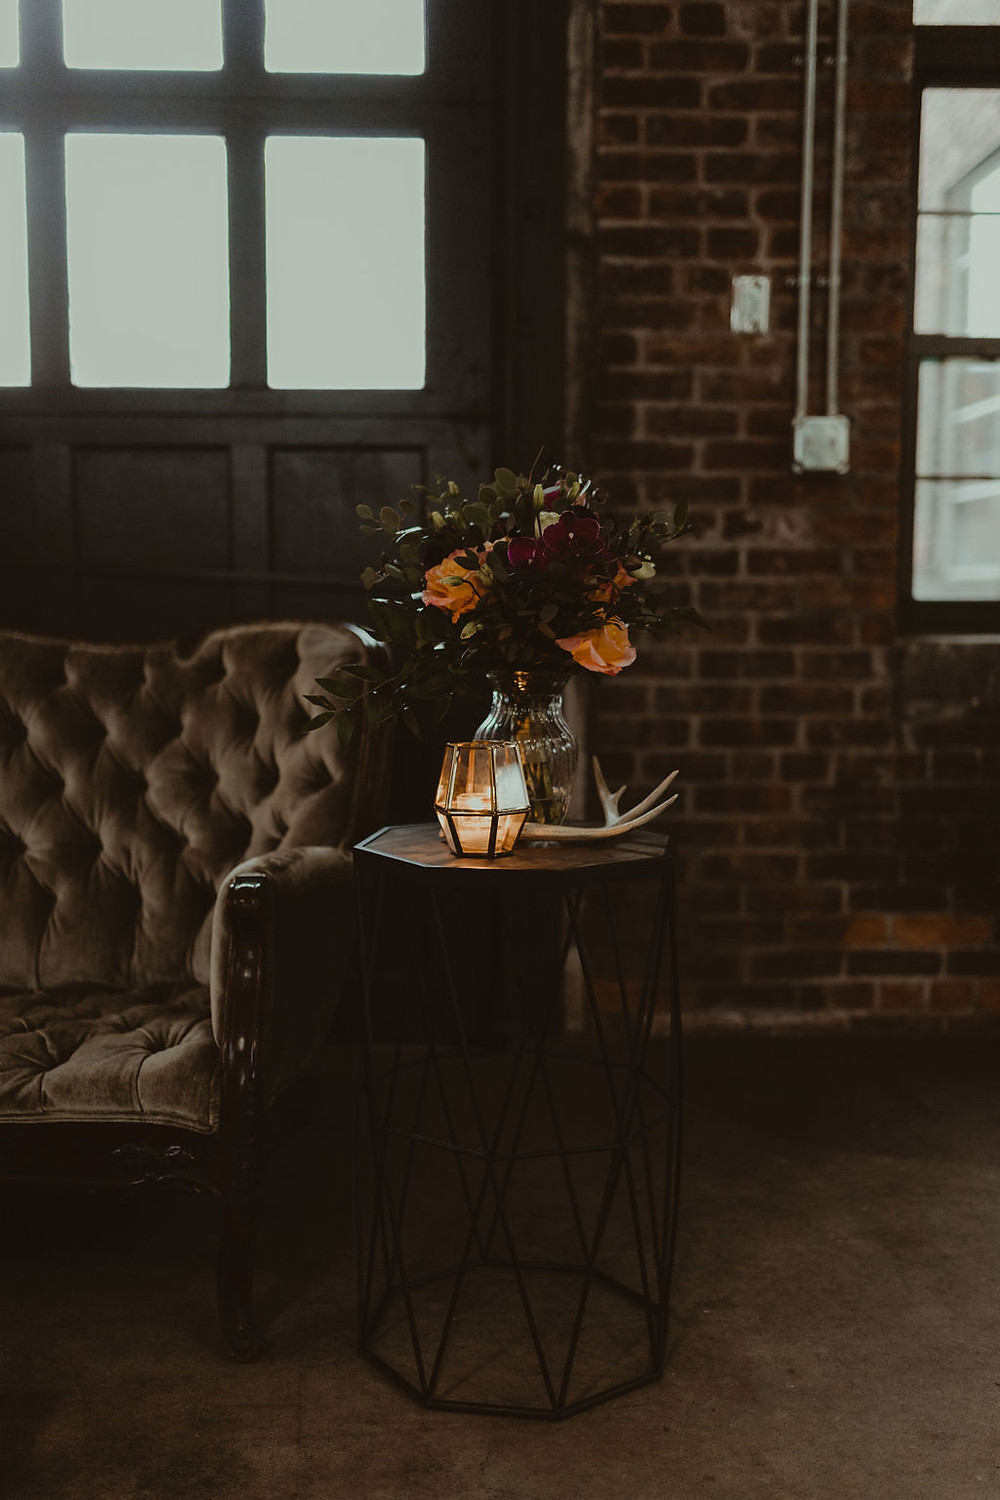 Vintage Wedding Decor: Industrial & Copper Styled Wedding Shoot at Smith's Market featured on Pretty Little Vintage Co.